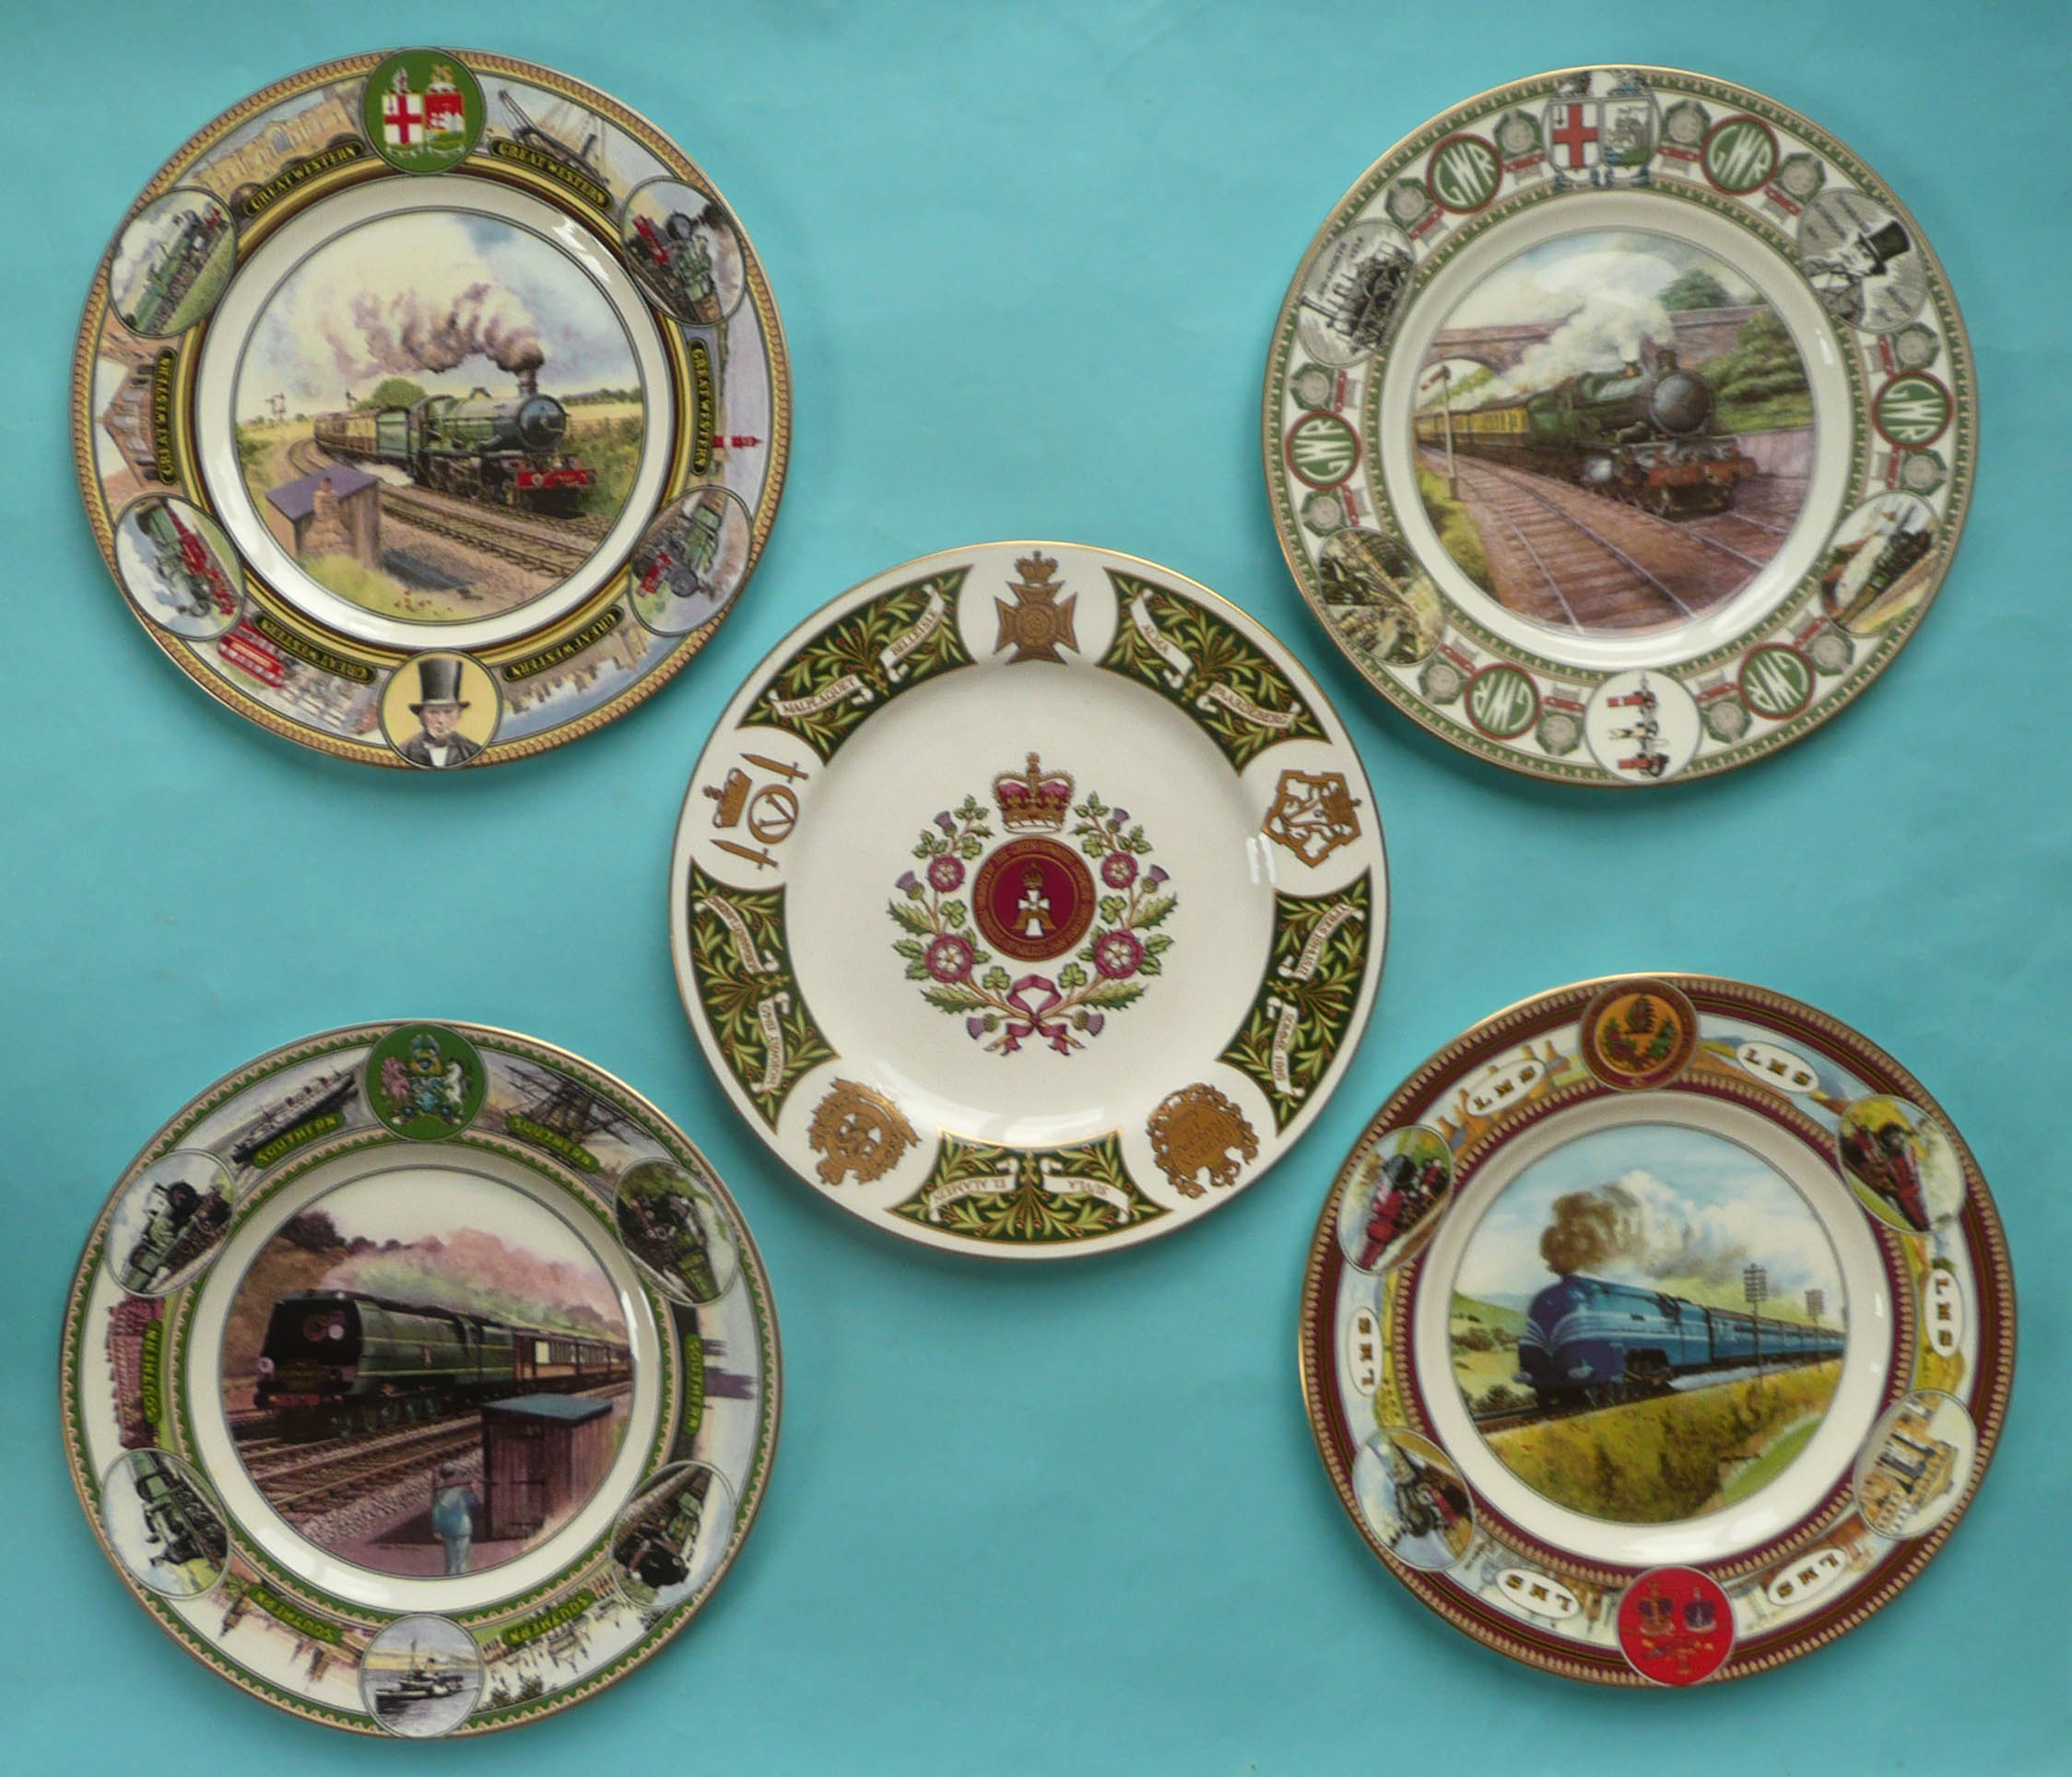 Lot 45 - A Spode for Mulberry Hall Green Howards regimental plate and four Coalport Railway plates, each